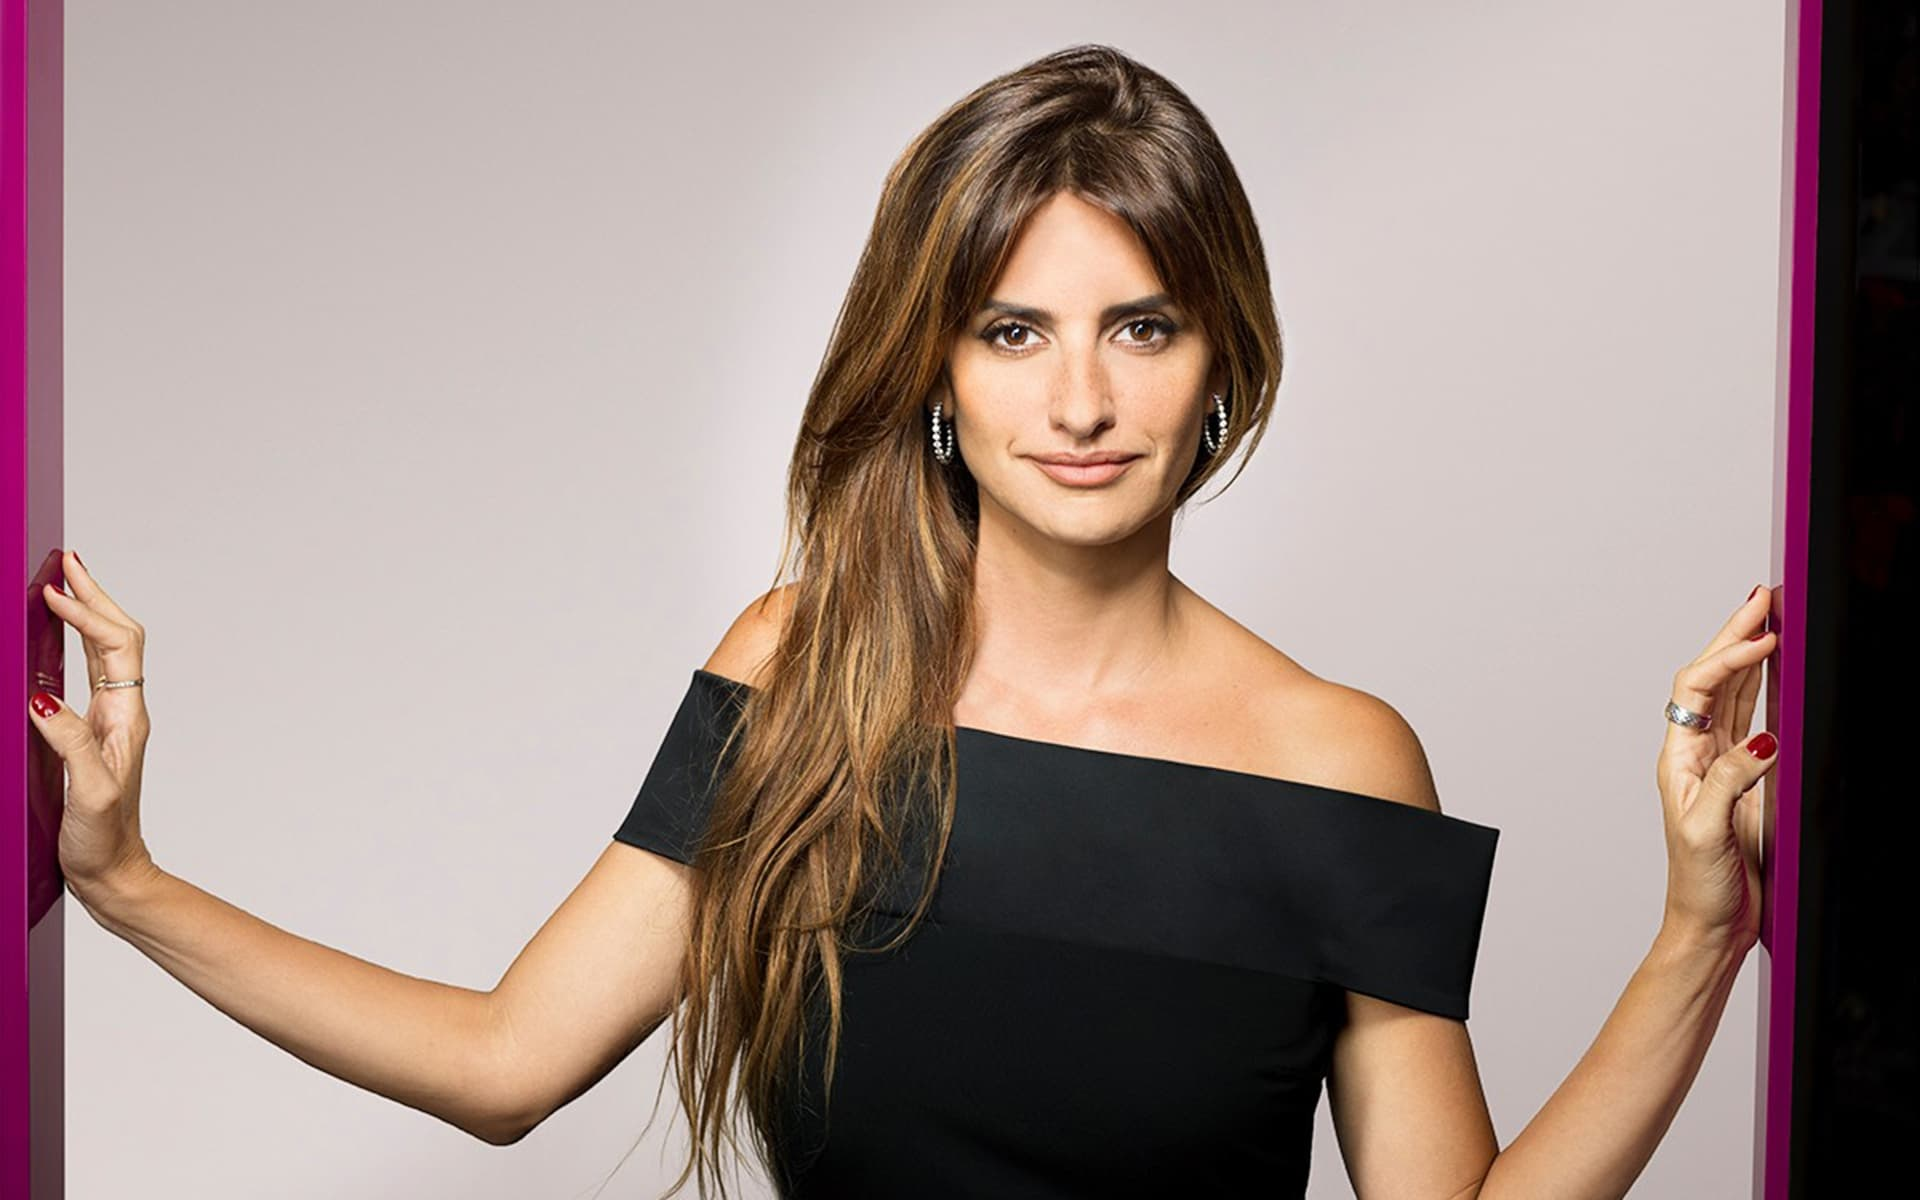 Stunning Penelope Cruz Wallpaper Smart Phone